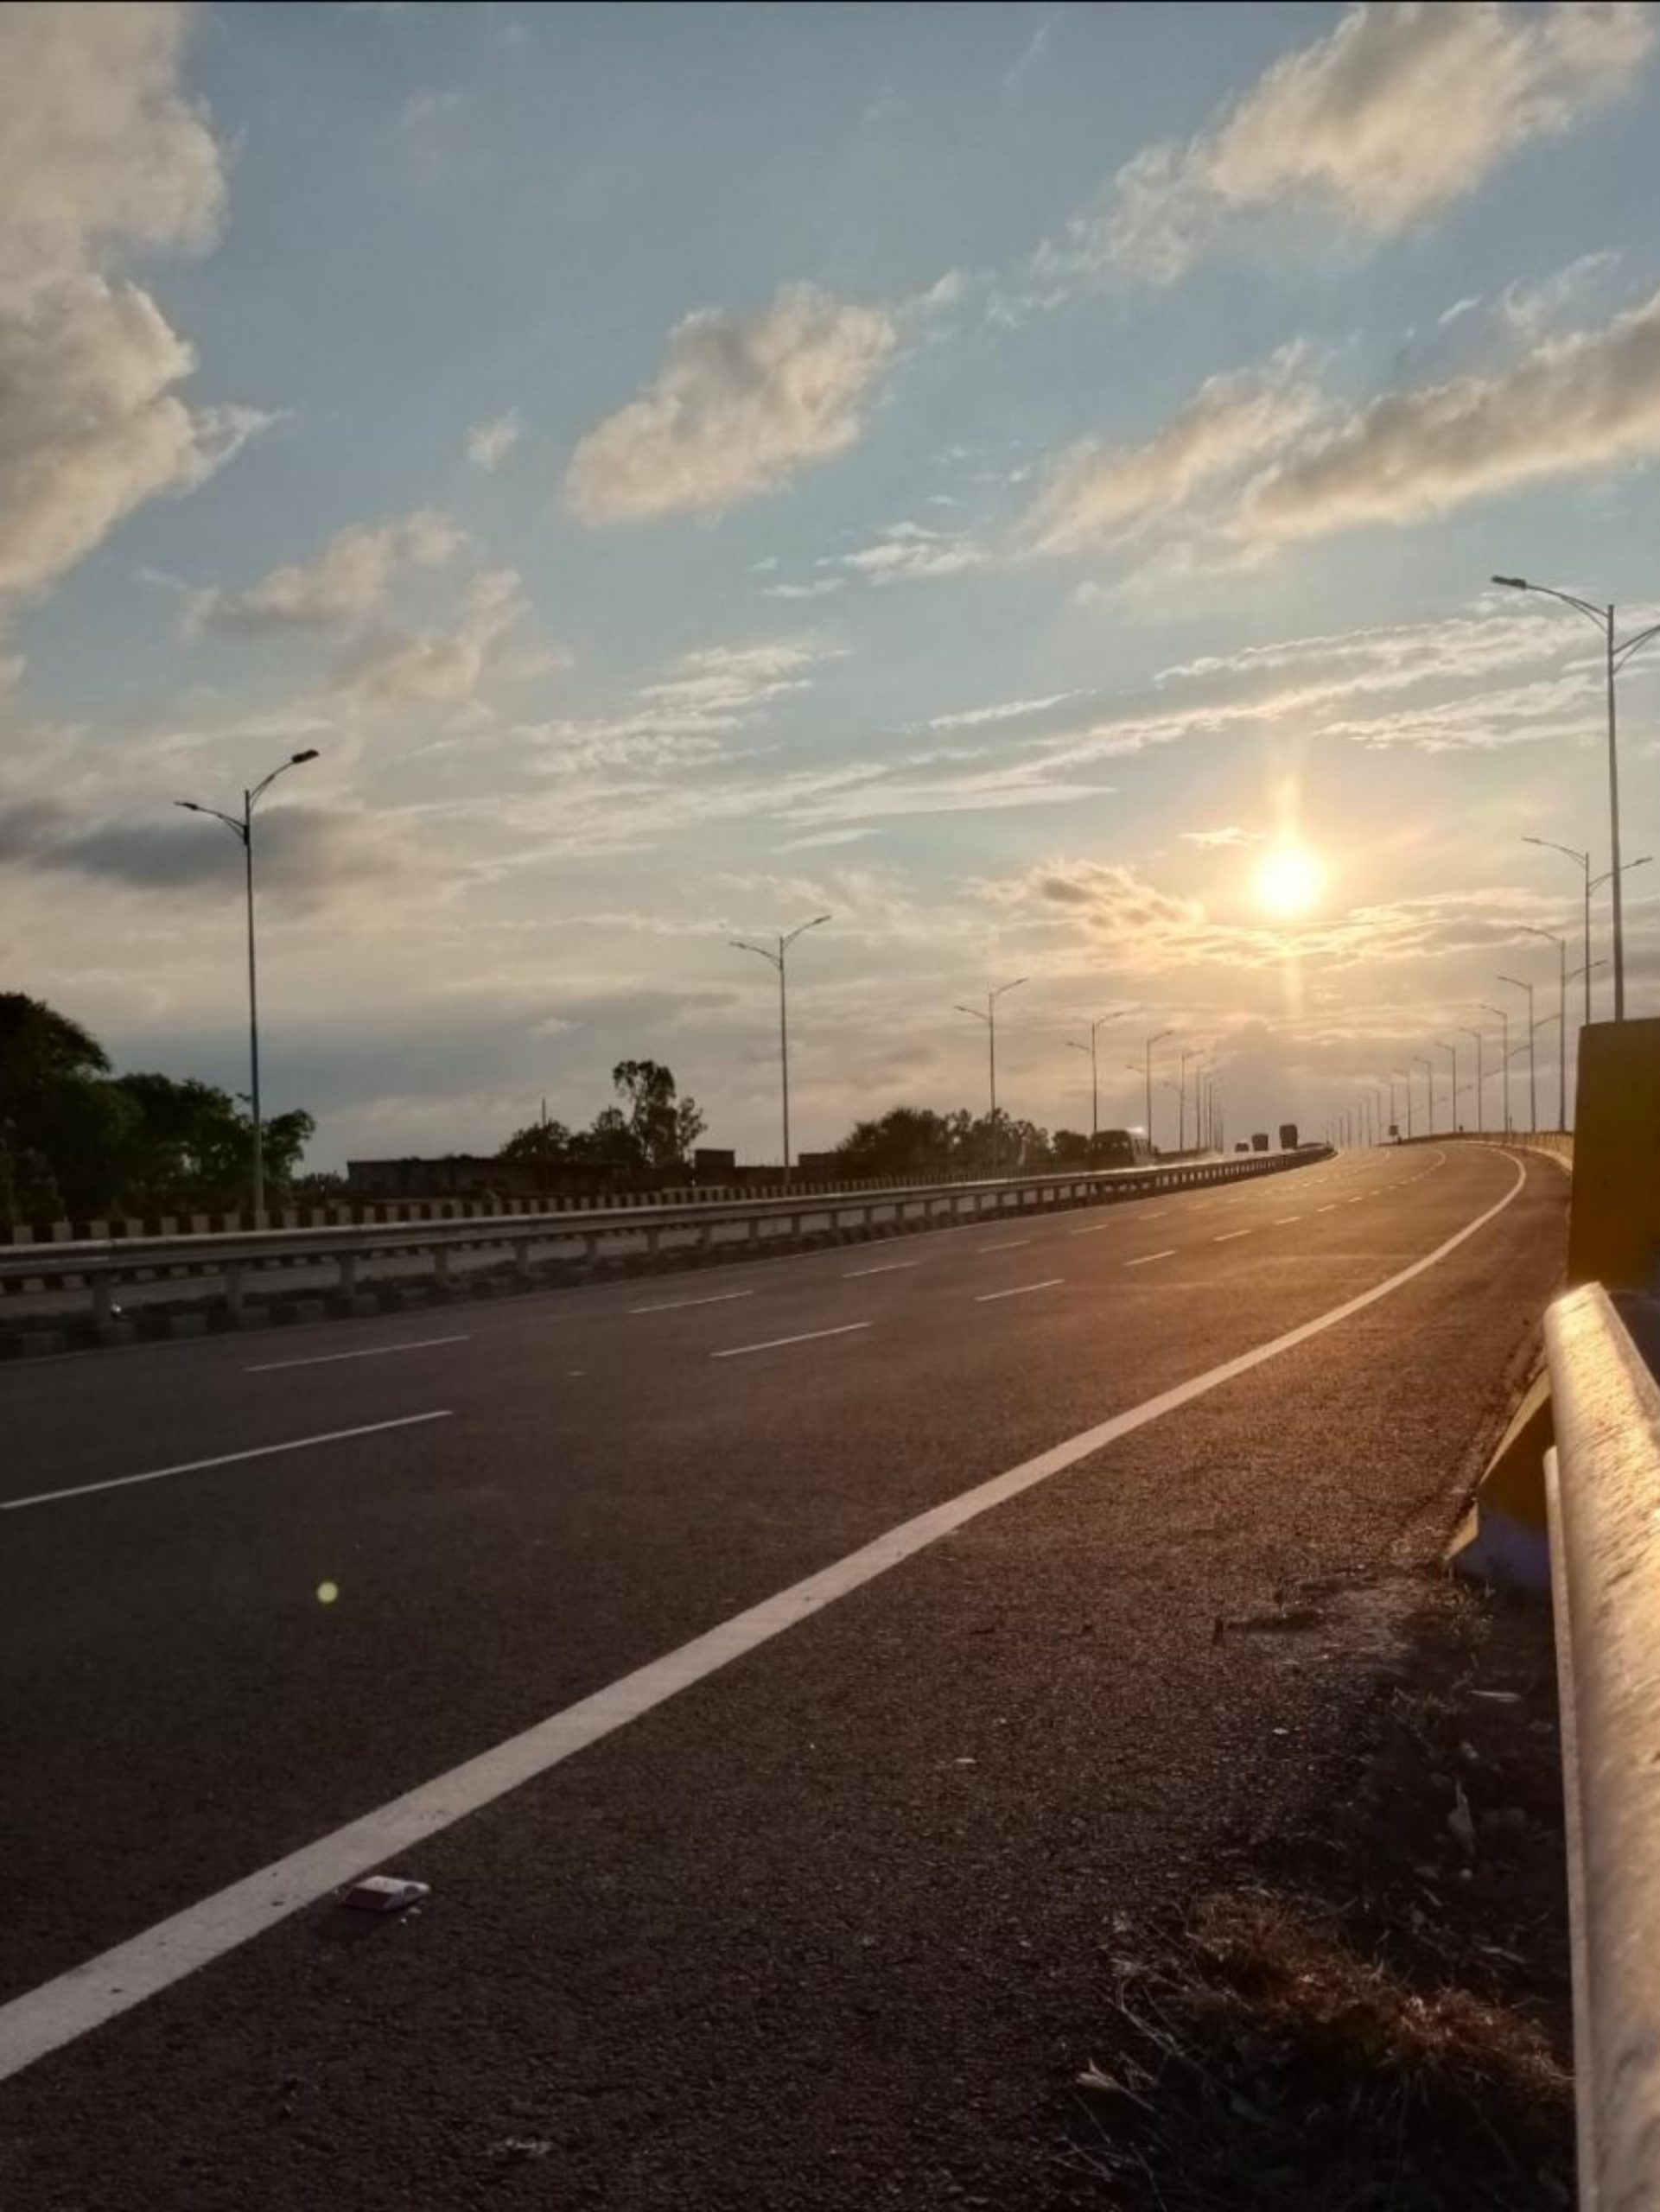 Early morning view of highway